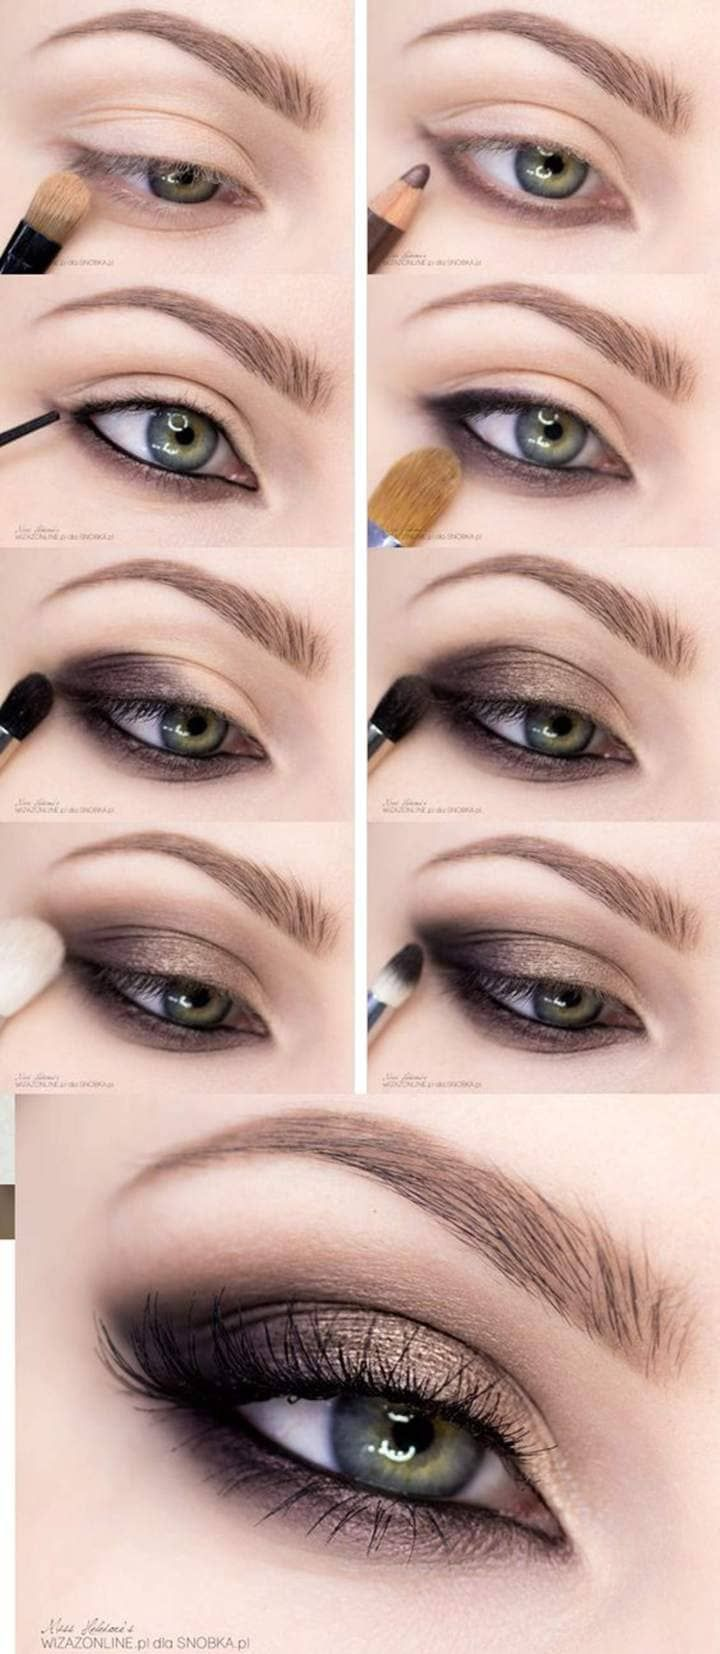 Color, brillo y estilo: tendencias para maquillarse los ojos